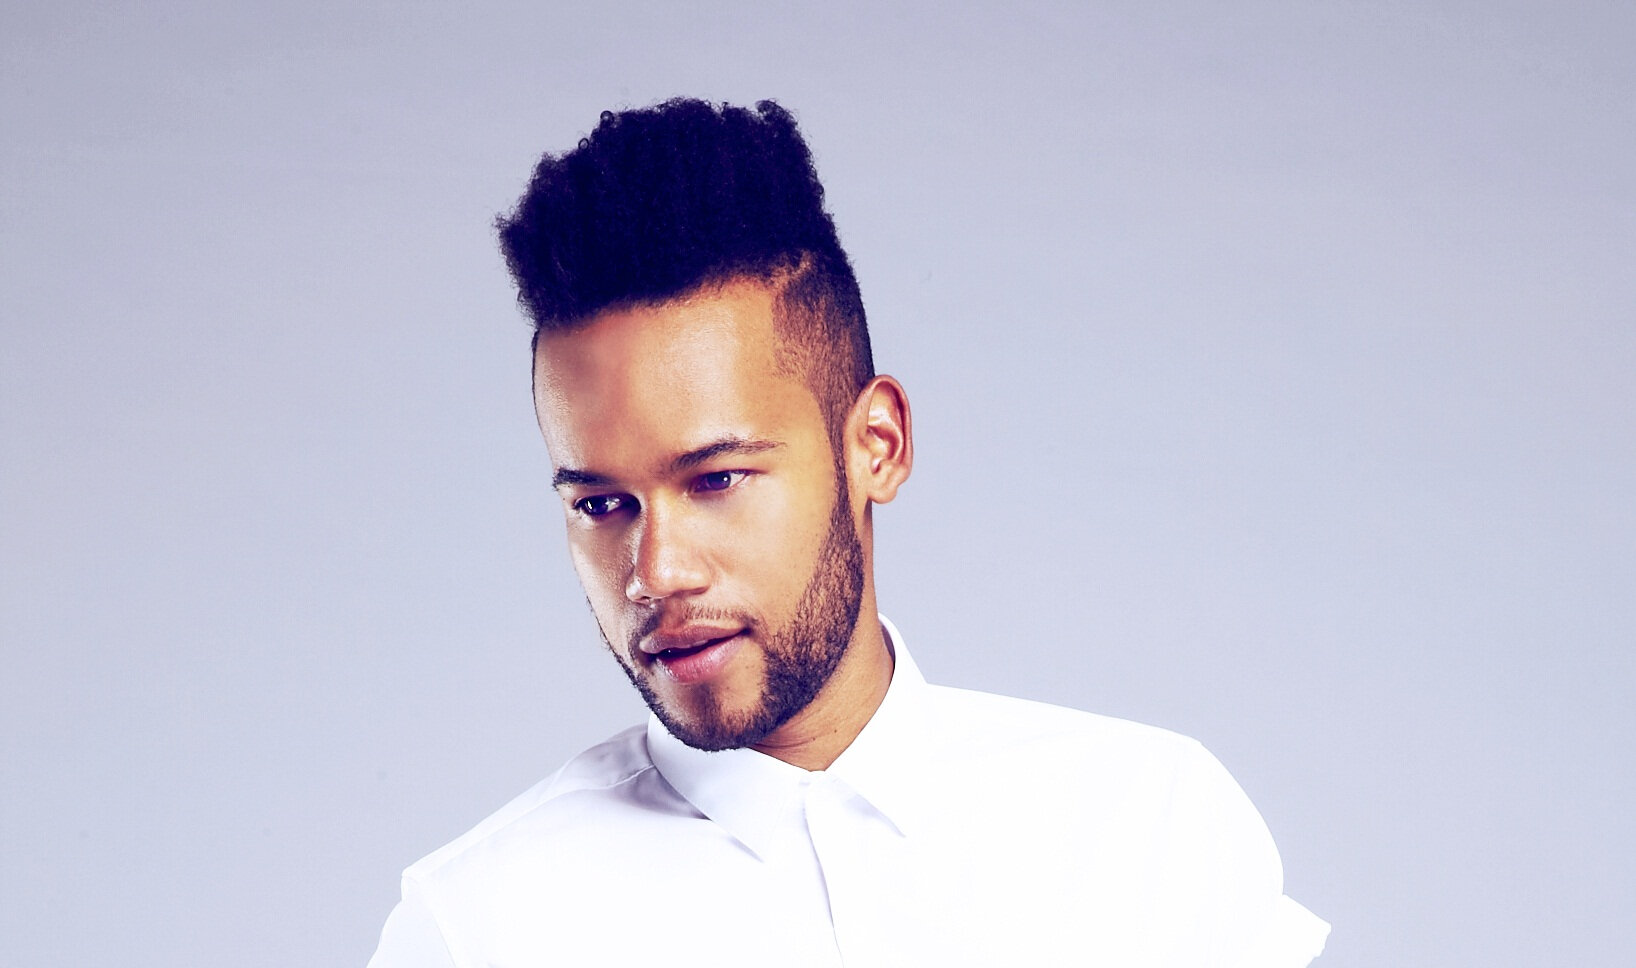 Part 2: How well do you know your mom, we asked Chad Saaiman